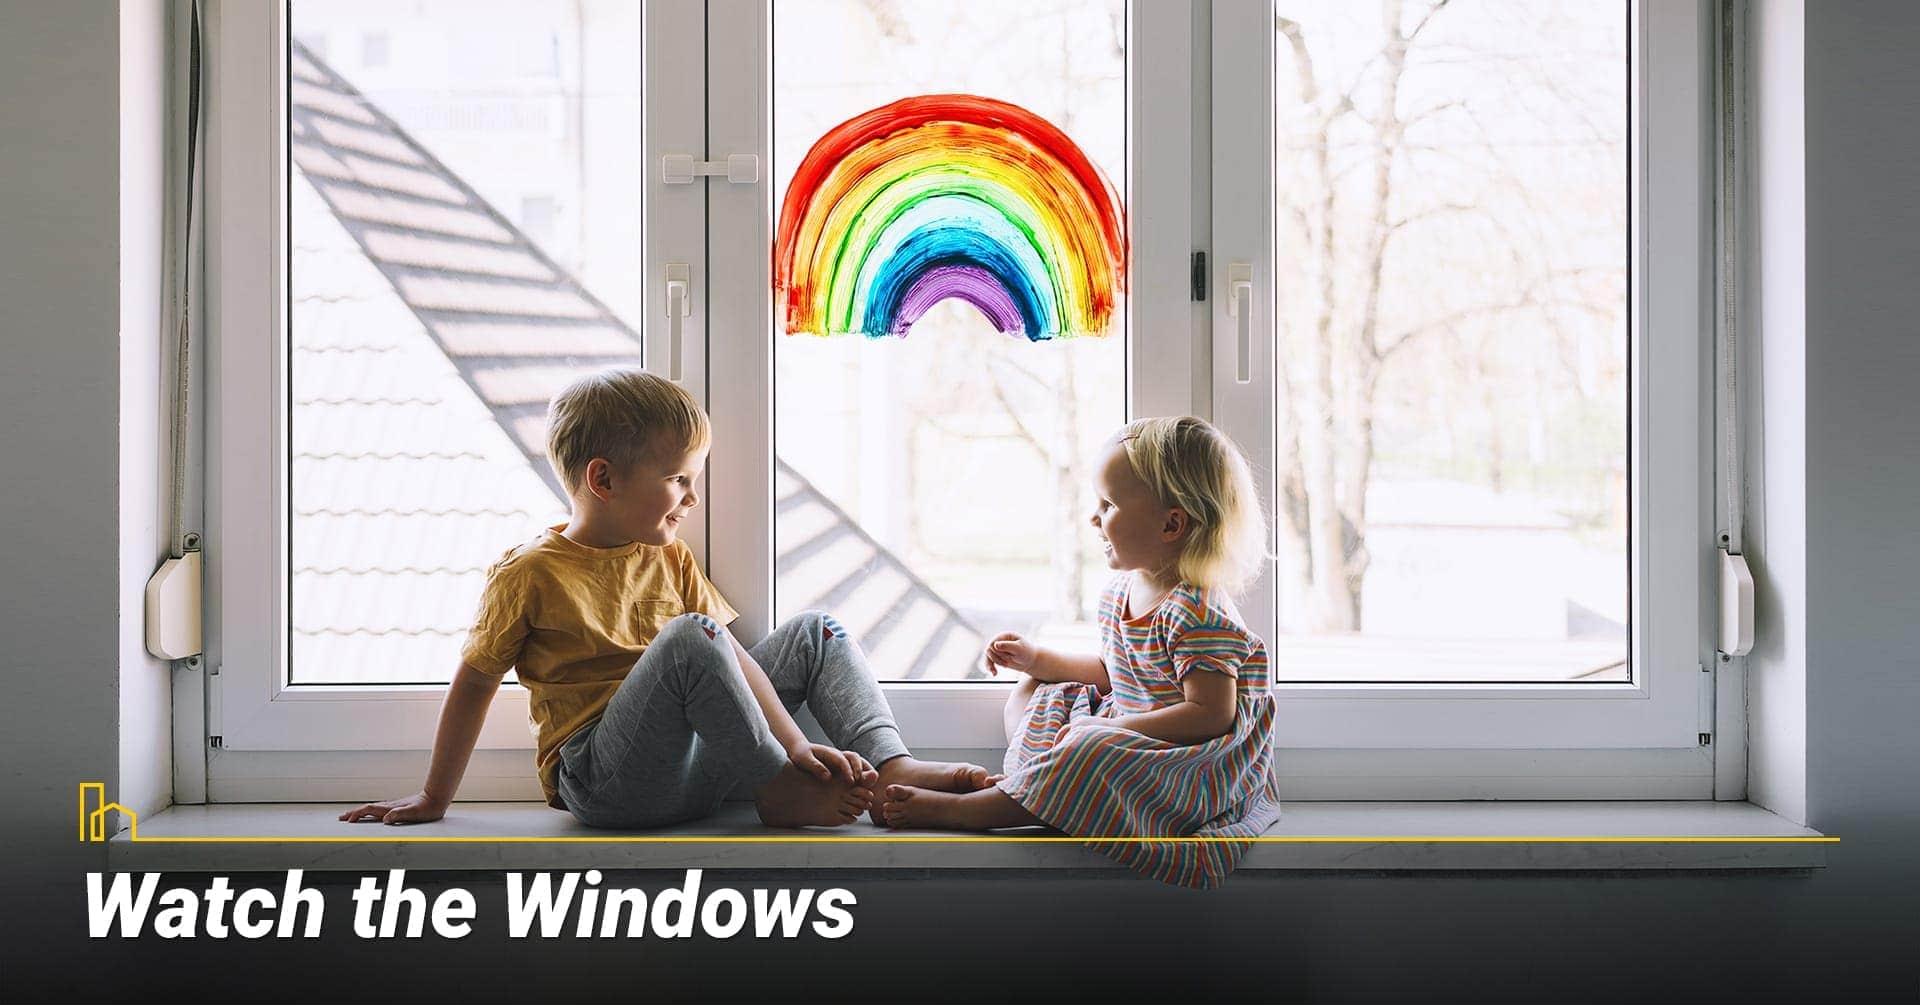 Watch the Windows, check your window sill